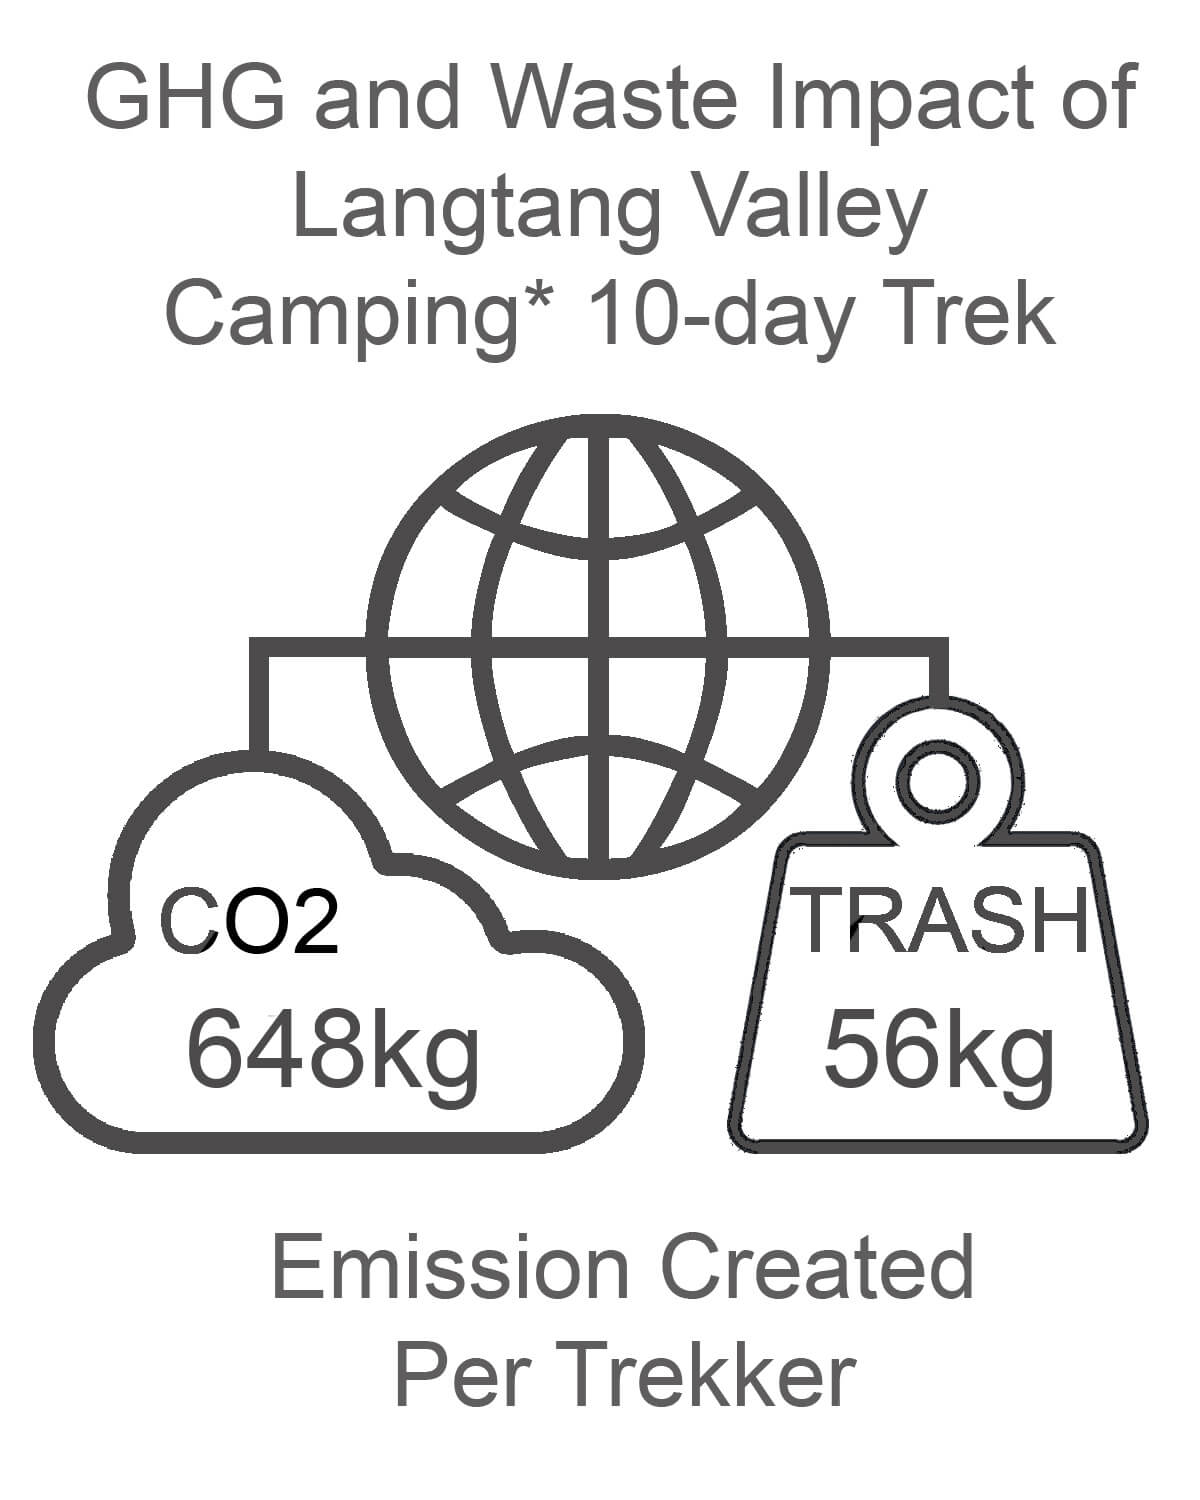 Langtang Valley GHG and Waste Impact CAMPING